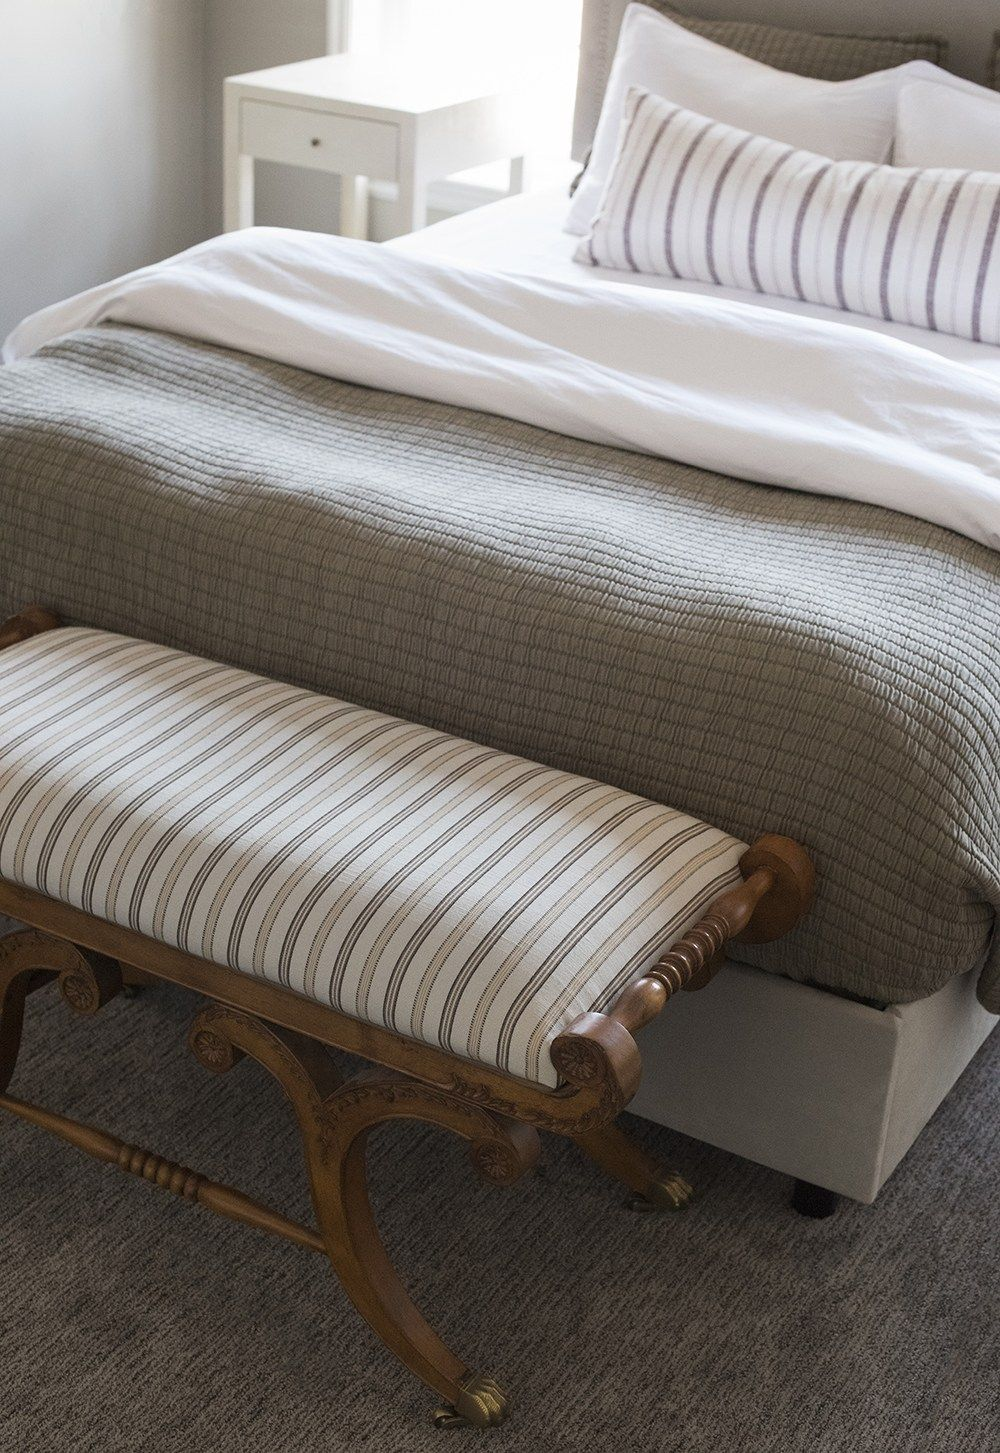 Roundup Ottomans Benches For The End Of Your Bed In 2020 Romantic Home Decor Bedroom Ottoman Guest Bedroom Design